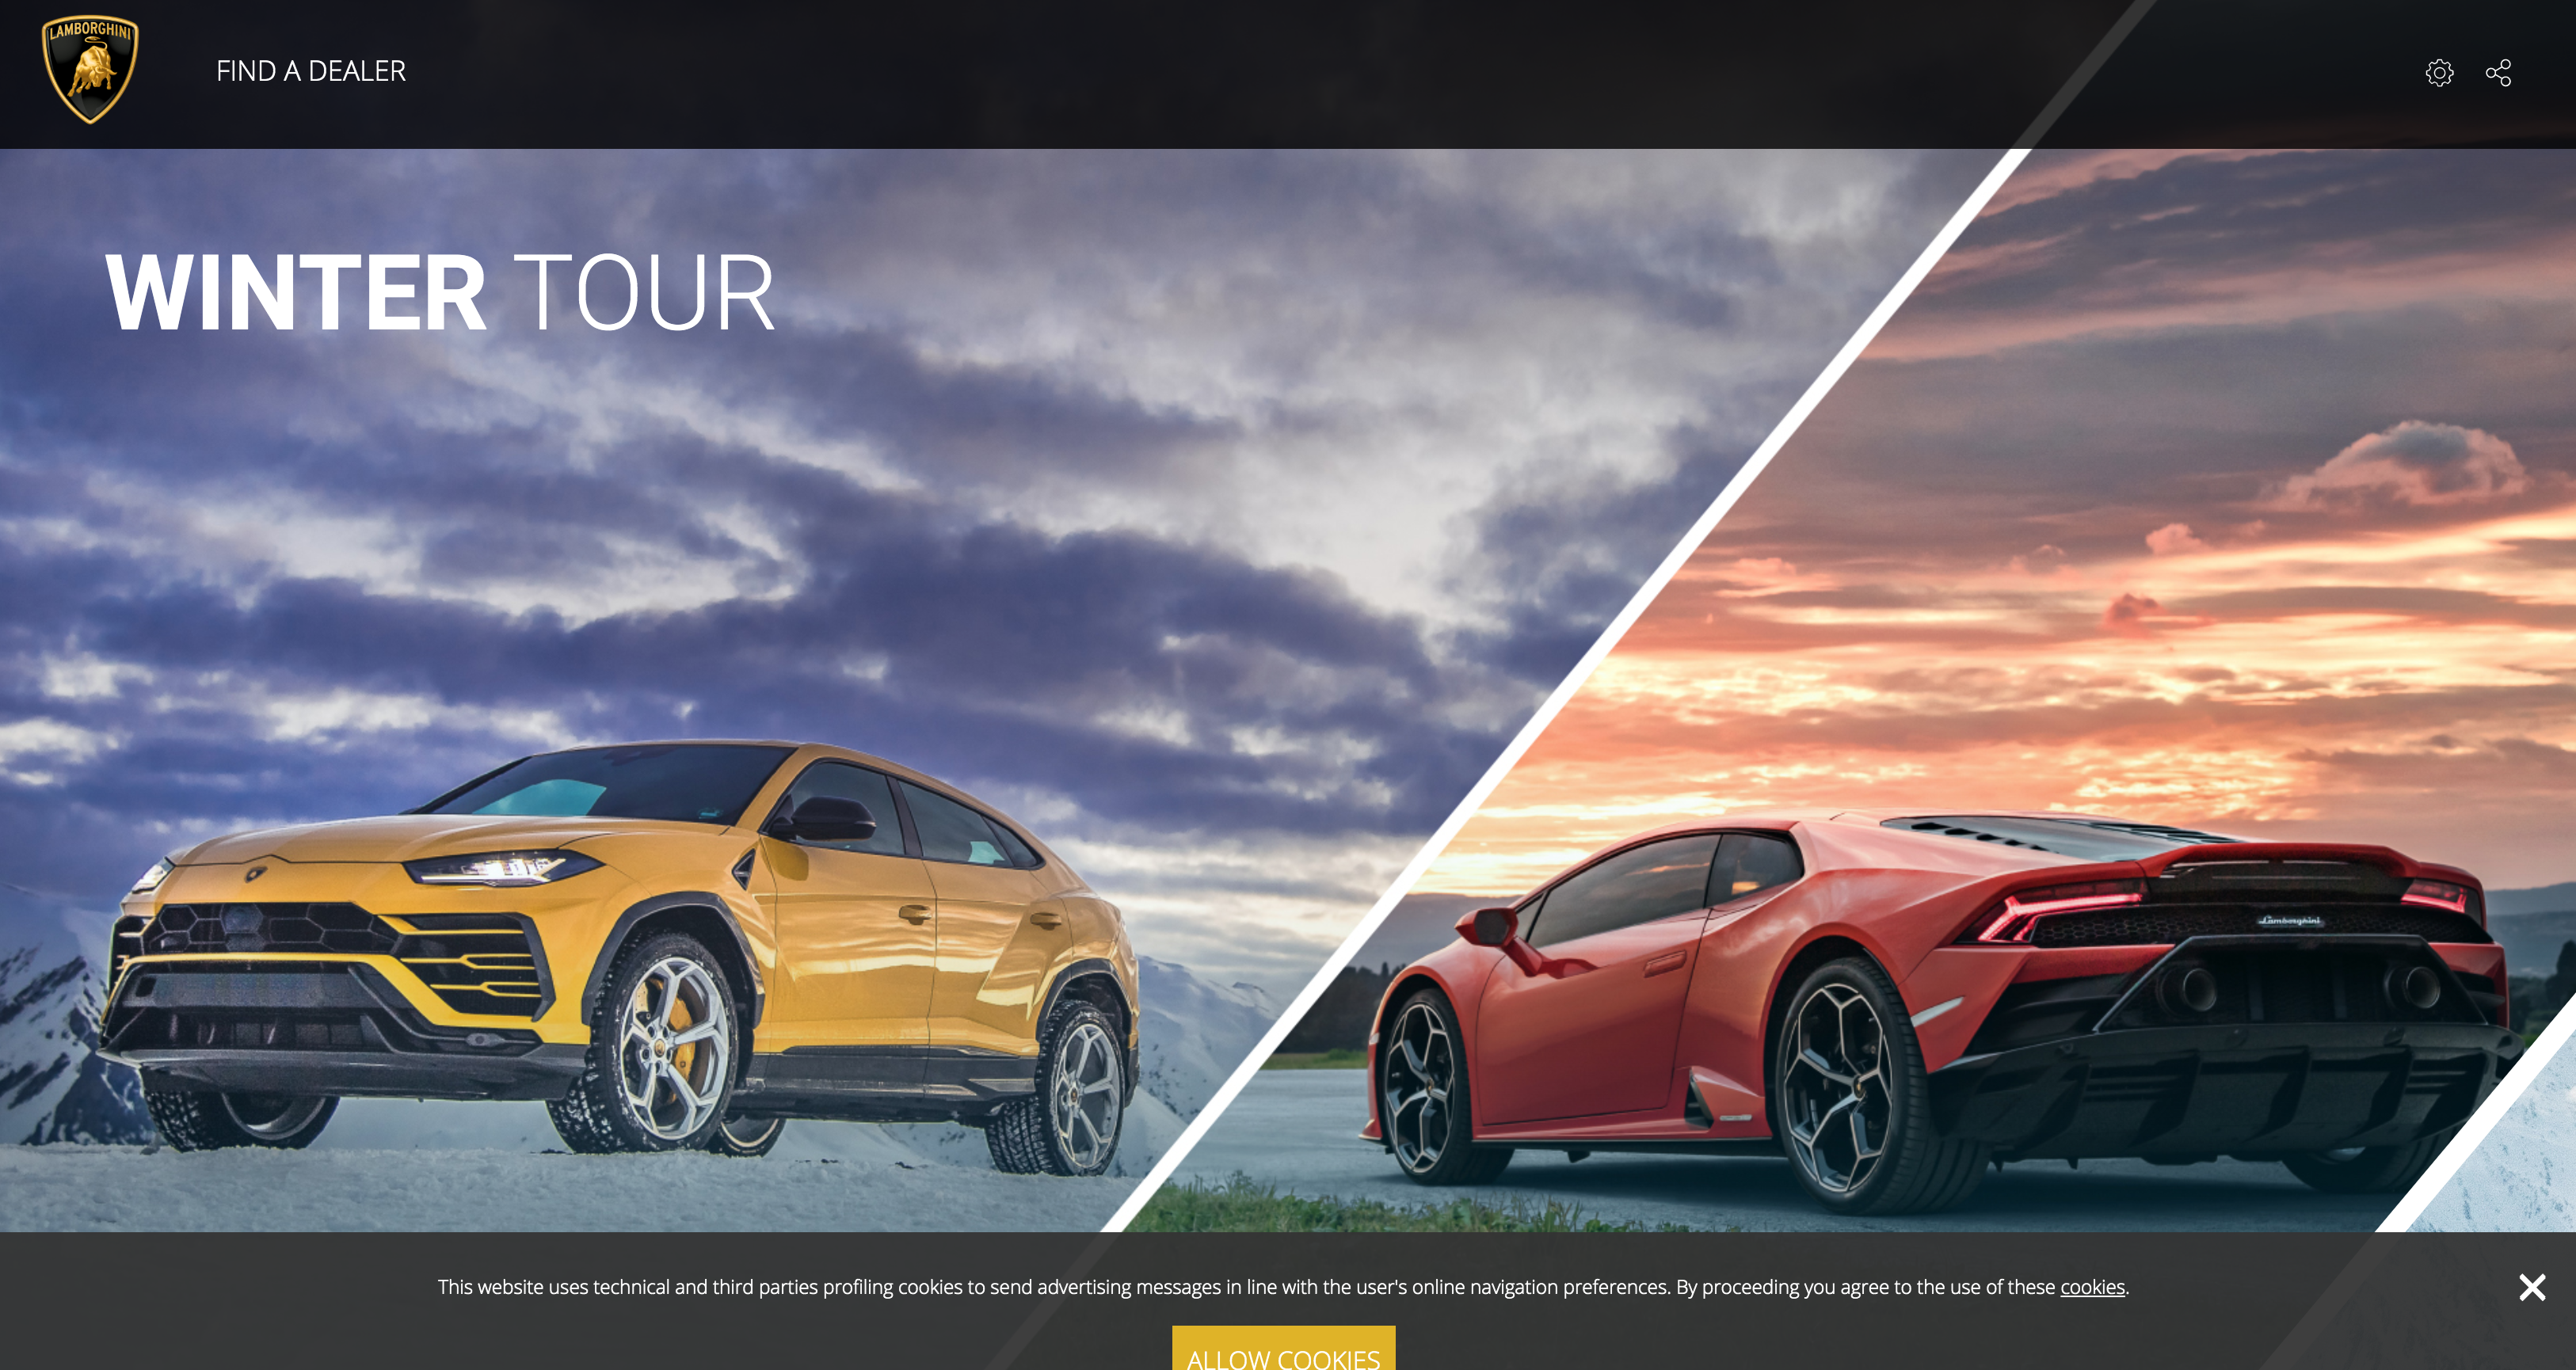 The Italian manufacturer's product launch page